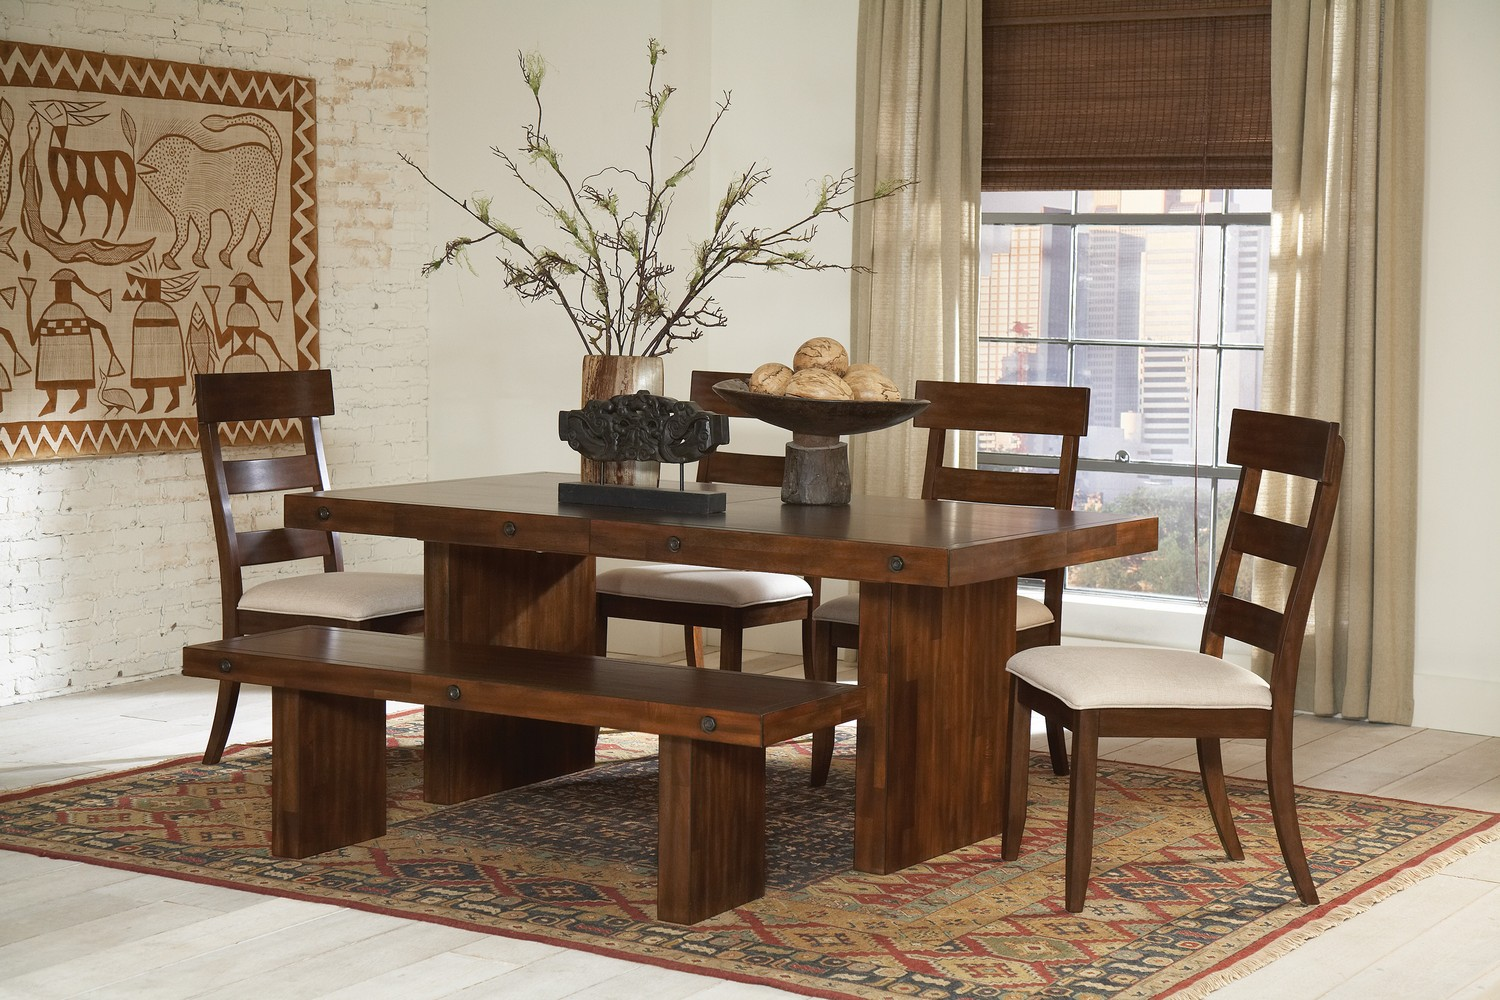 Coaster Montague Dining Set - Rustic Brown